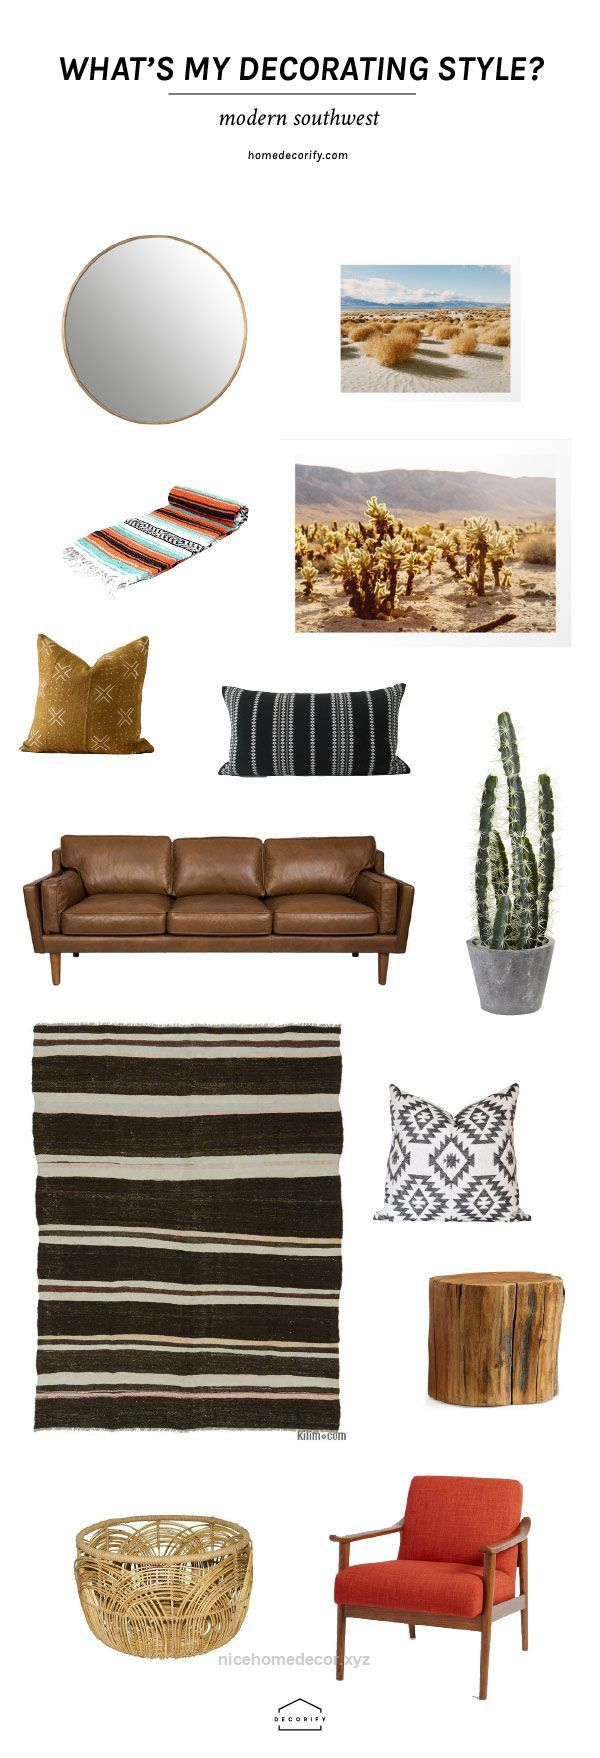 Lovely Modern Southwest Decor | Global Home Decor | Boho Home Decor | Mudcloth | Midcentury  The post  Modern Southwest Decor | Global Home Decor | Boho Home Decor | Mudcloth | Midce ..